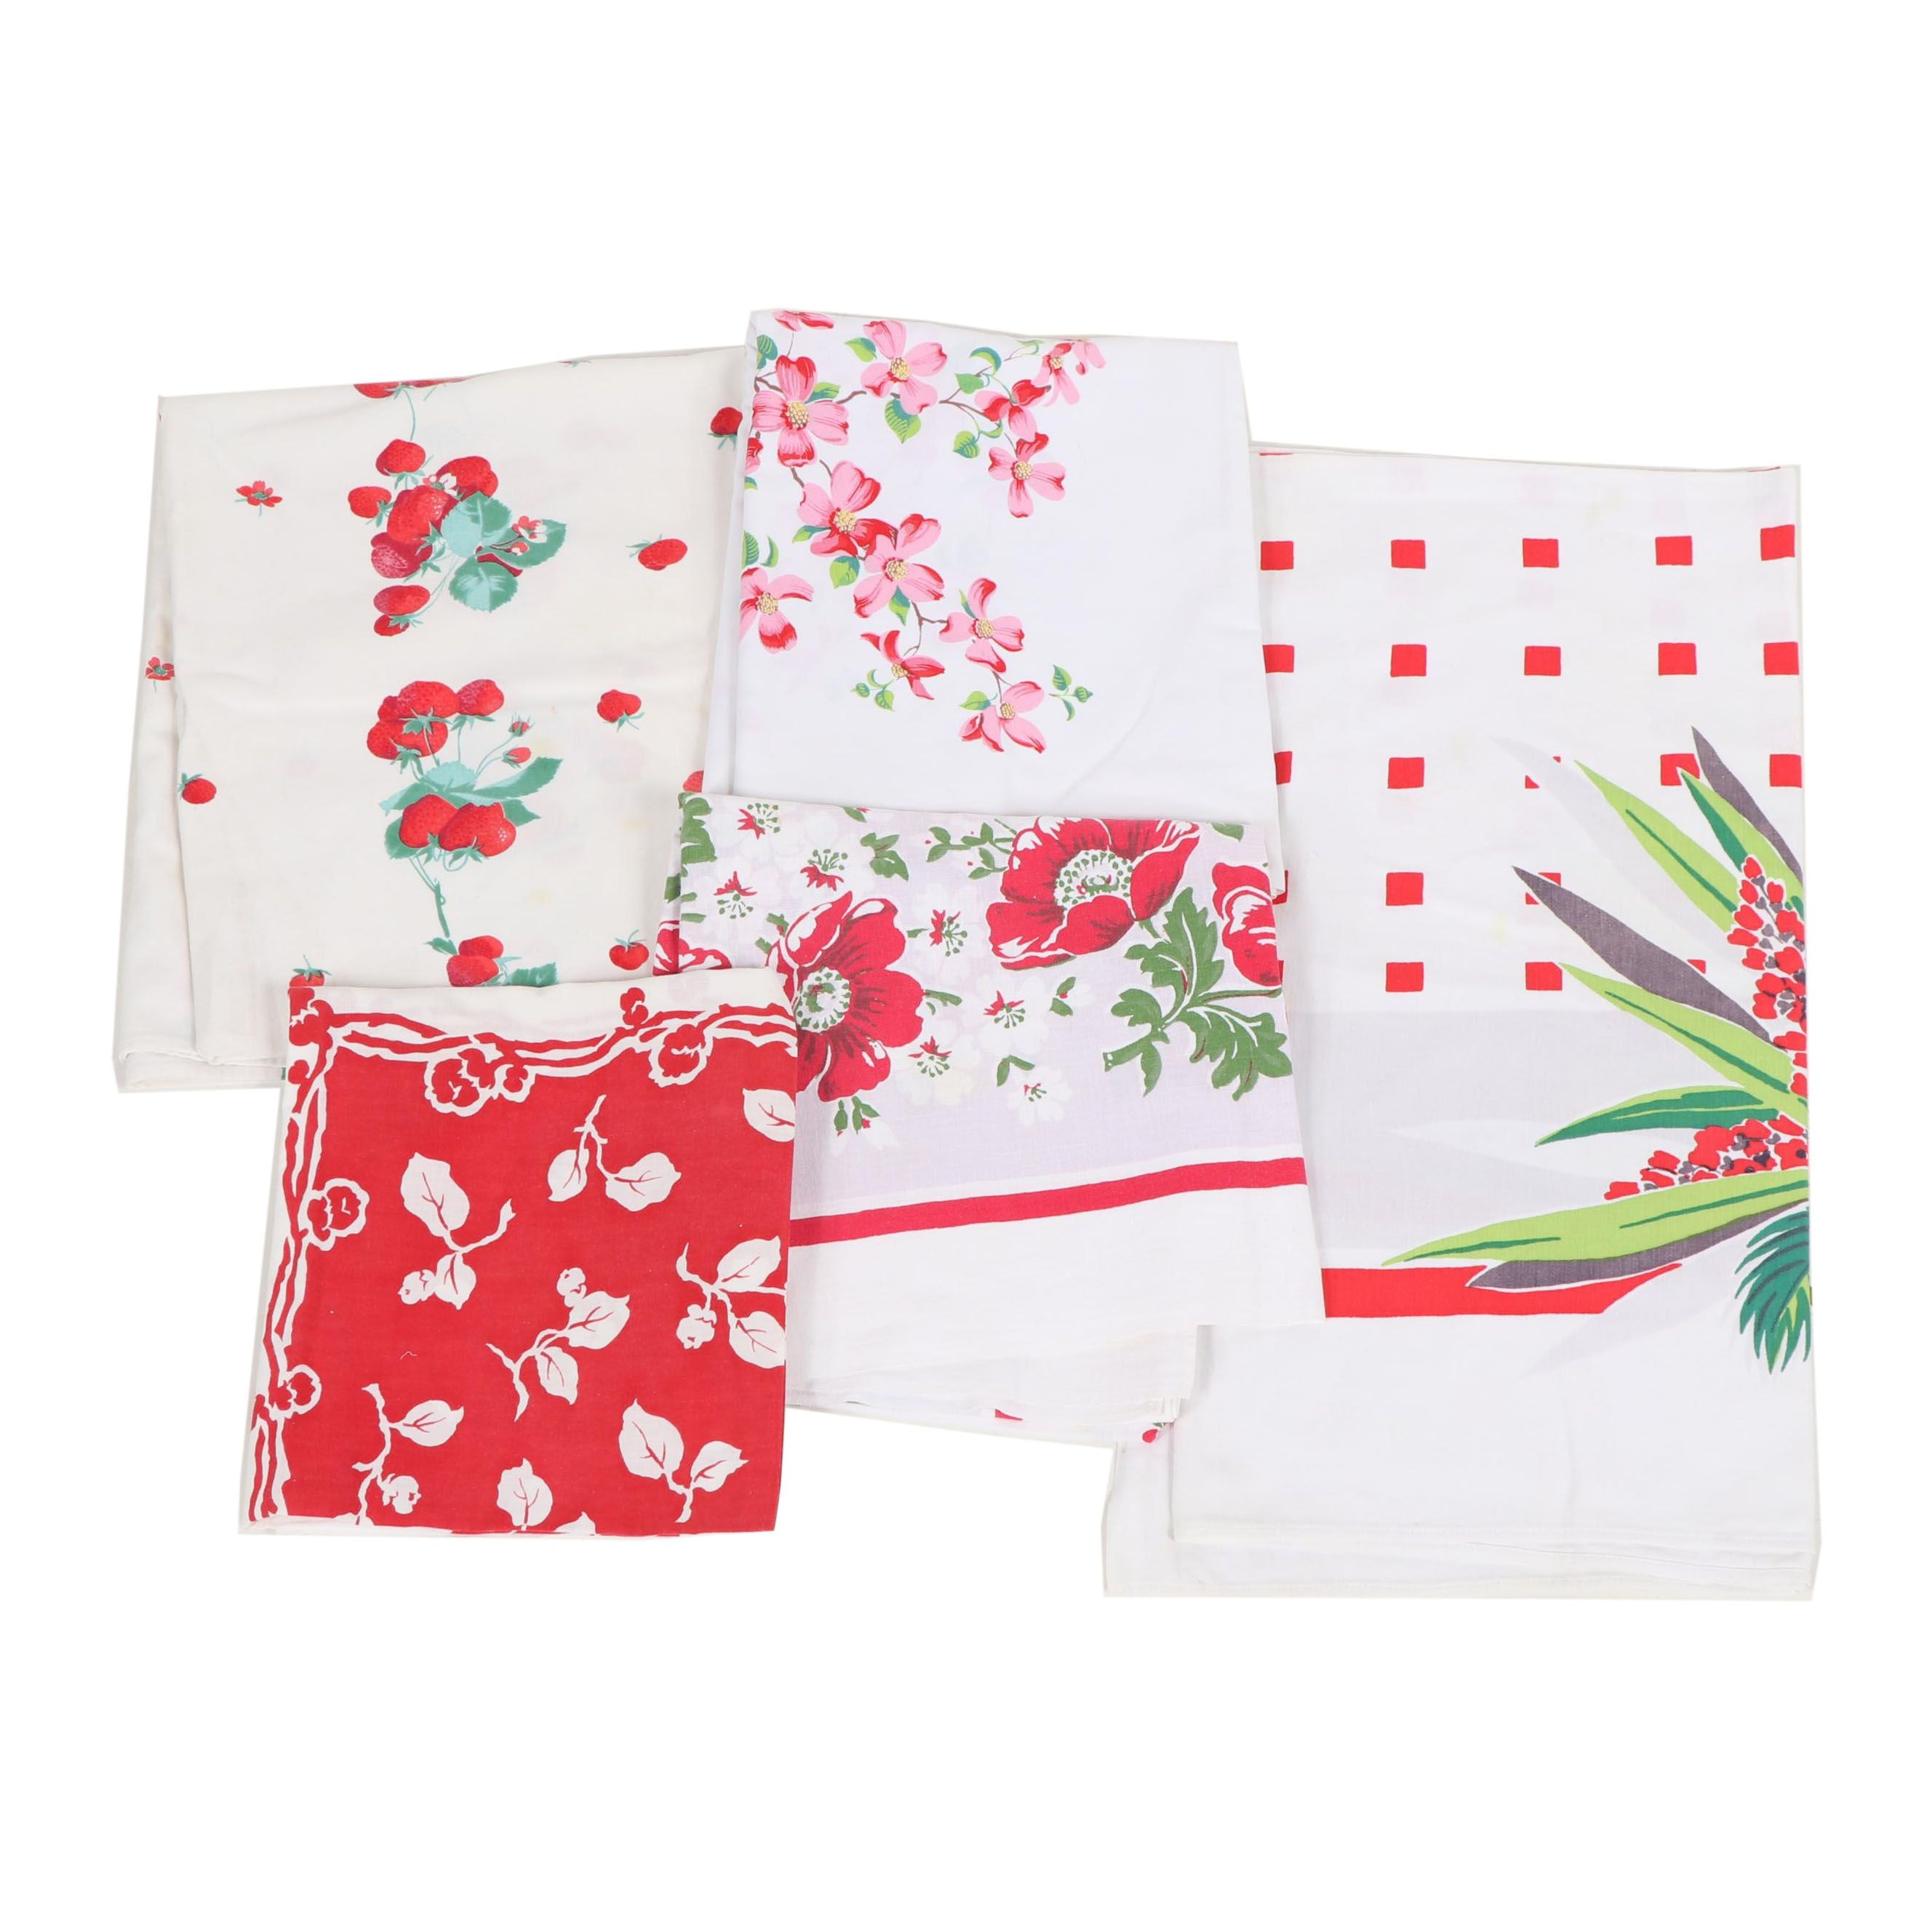 Printed Floral Table Linens, Mid-20th Century